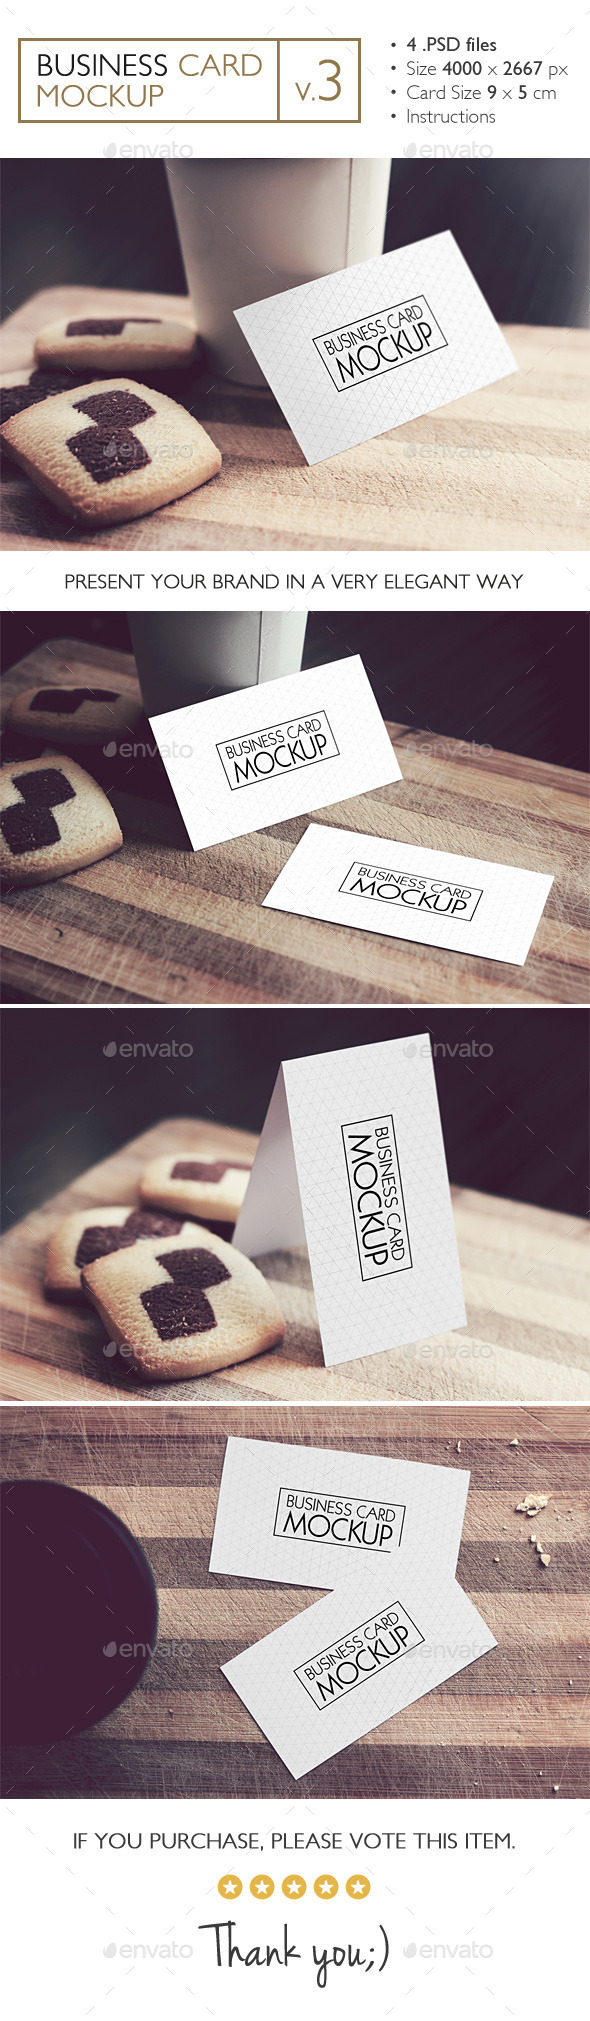 GraphicRiver Business Card Mockup v.3 11242612